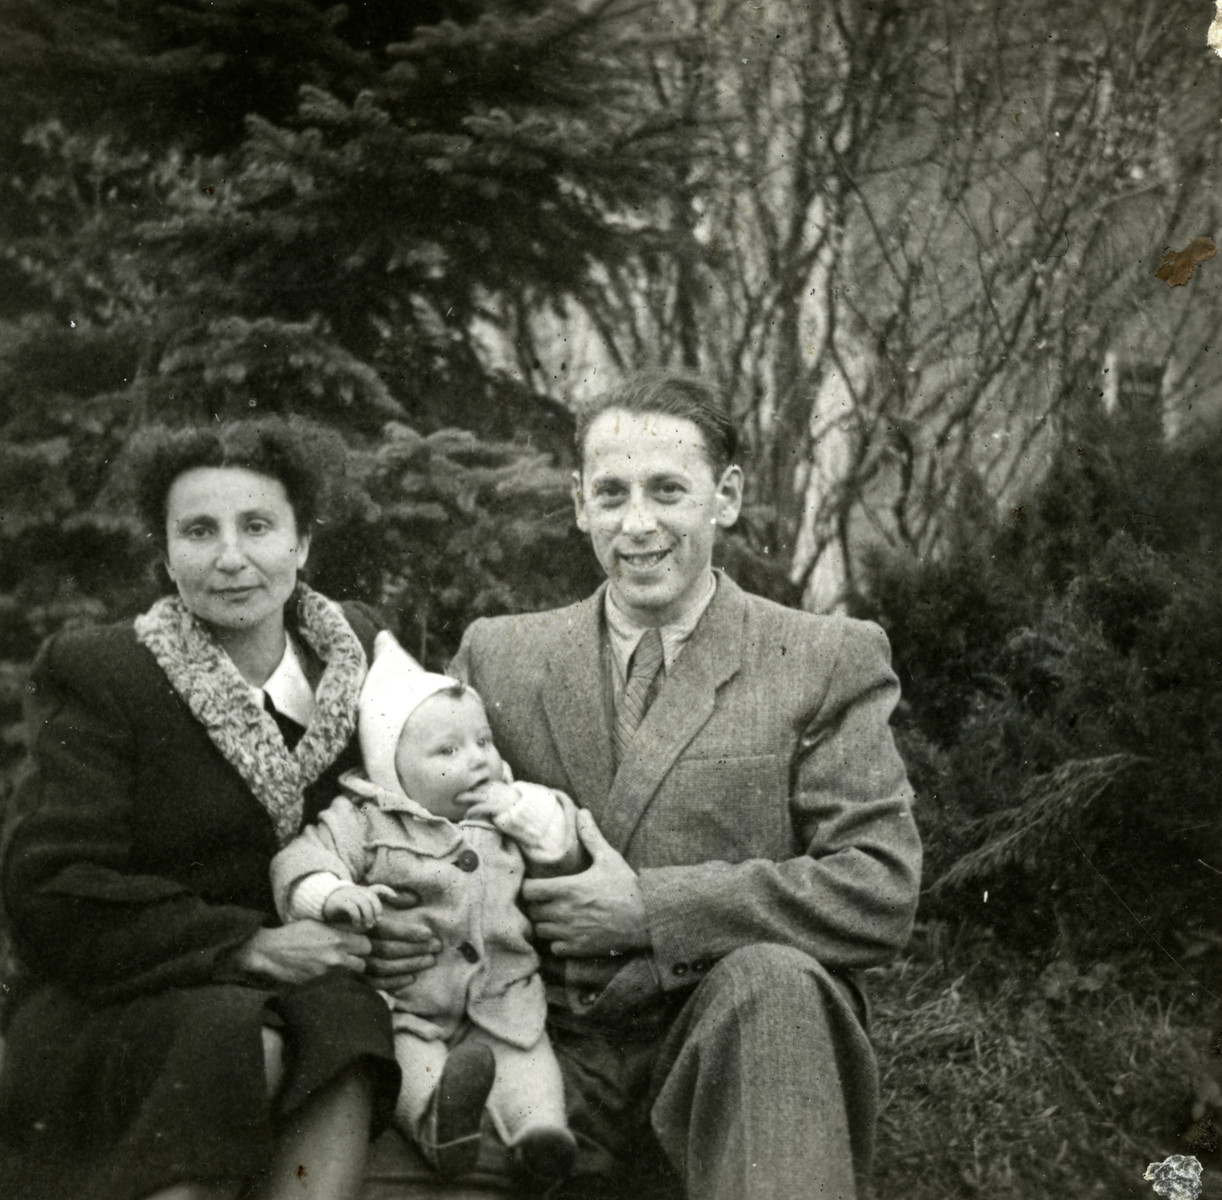 Emil and Elze Goldberg sit outside with their baby son Edwin (Eddy)